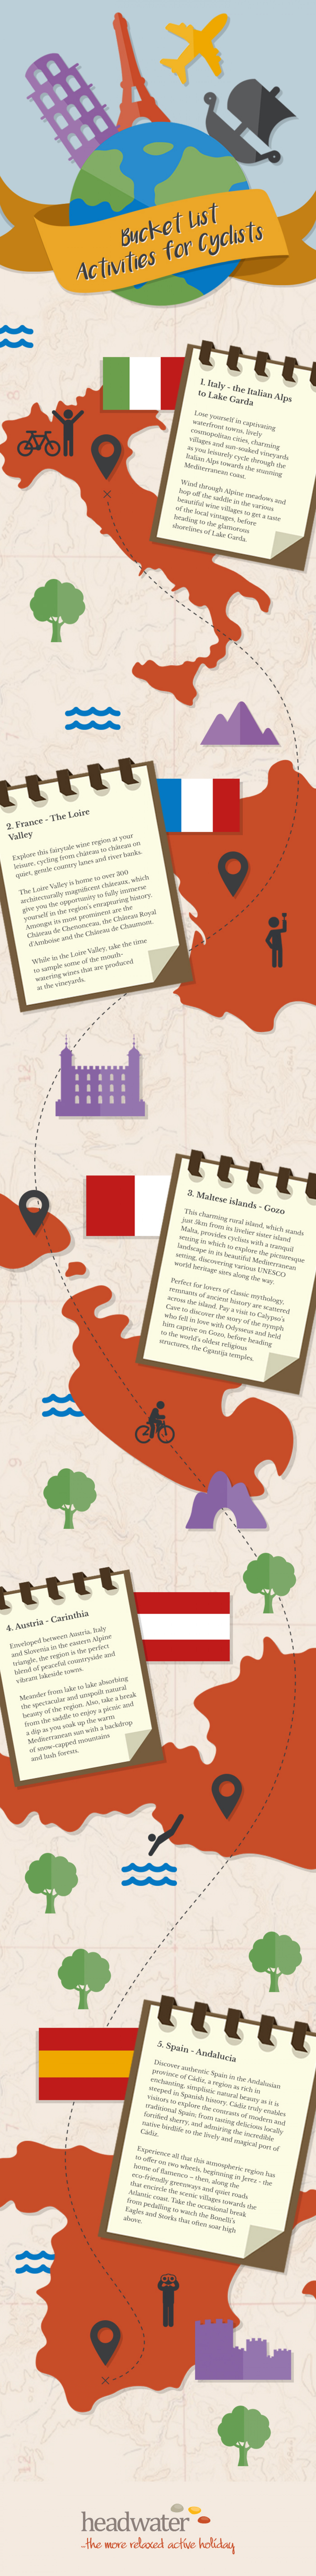 Bucket List Activities for Cyclists Infographic